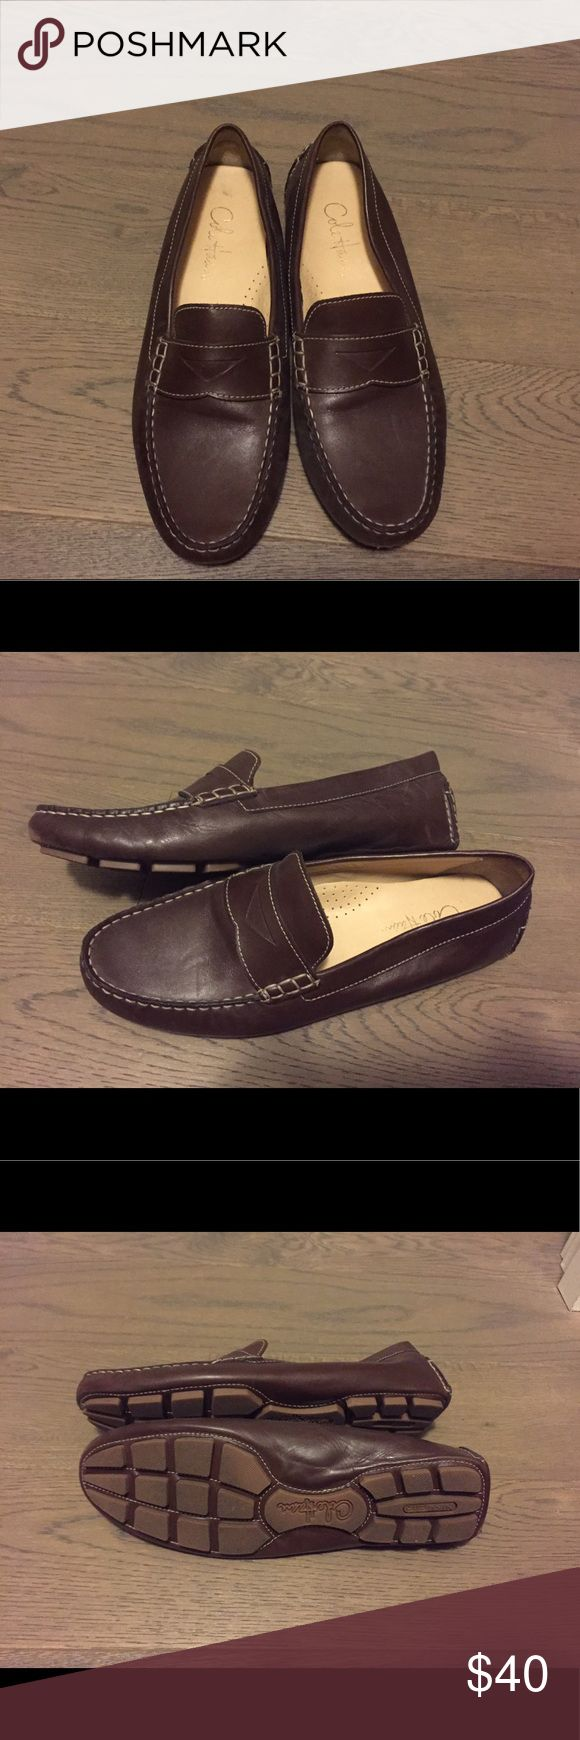 Cole Haan loafers Cole Haan loafer. Chocolate brown. Very comfortable and great for fall! Worn once. Cole Haan Shoes Flats & Loafers